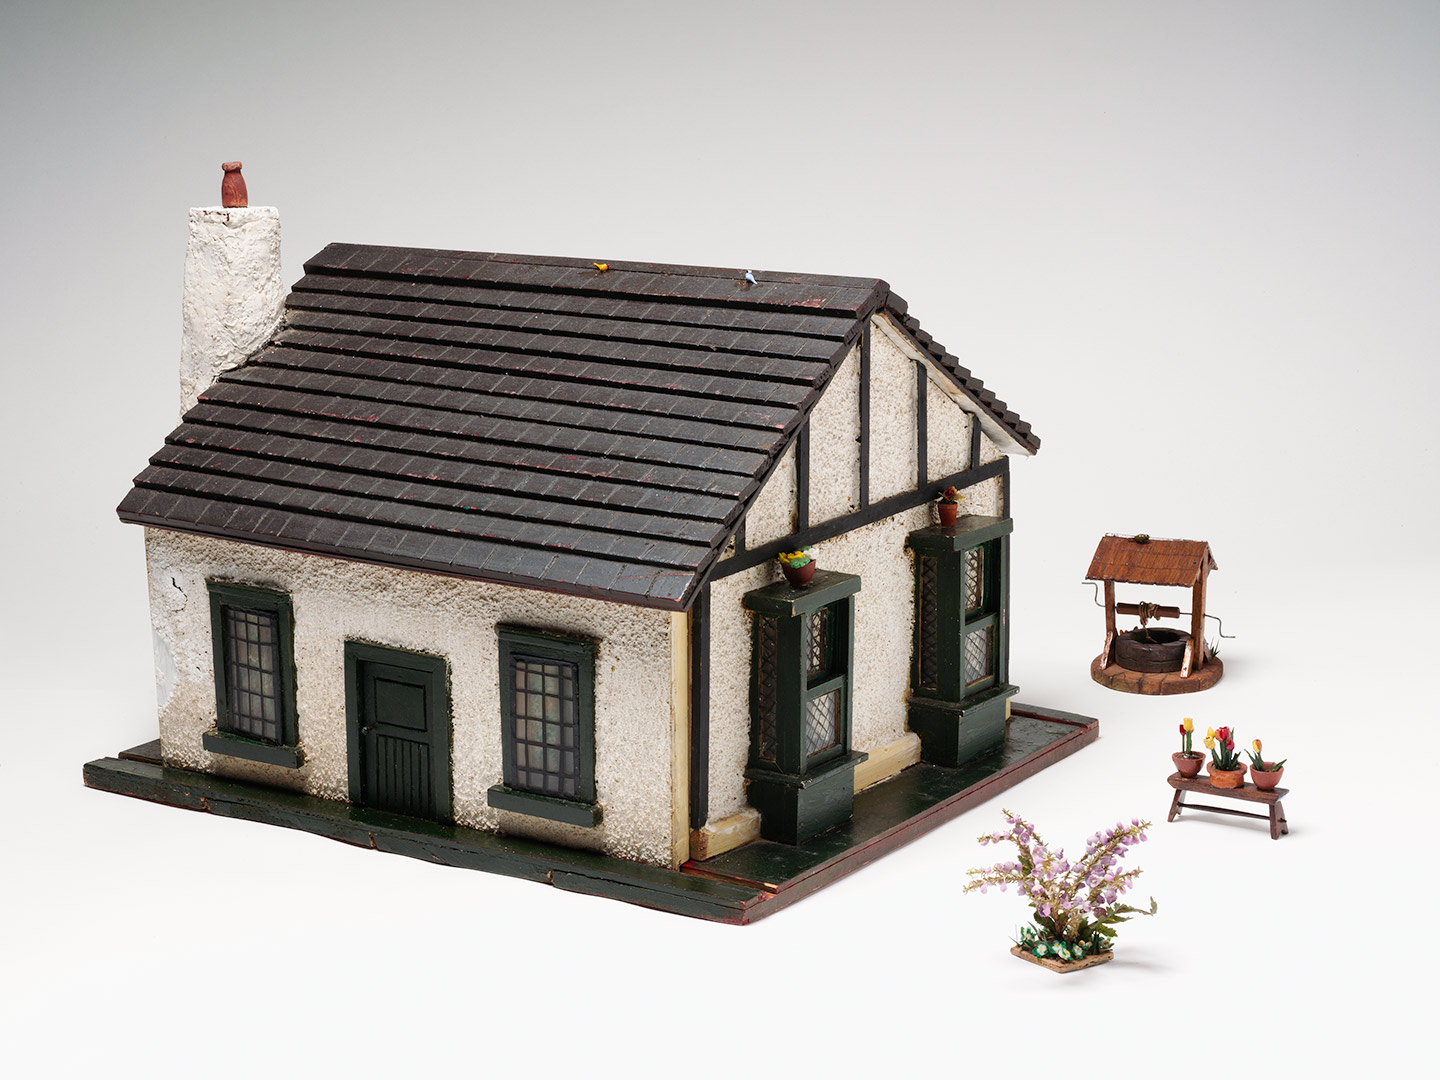 Doll's house and accessories, standing on a base board. Hinged roof section, exterior walls decorated with a white plaster pebble-effect finish and a dark tile-effect roof.